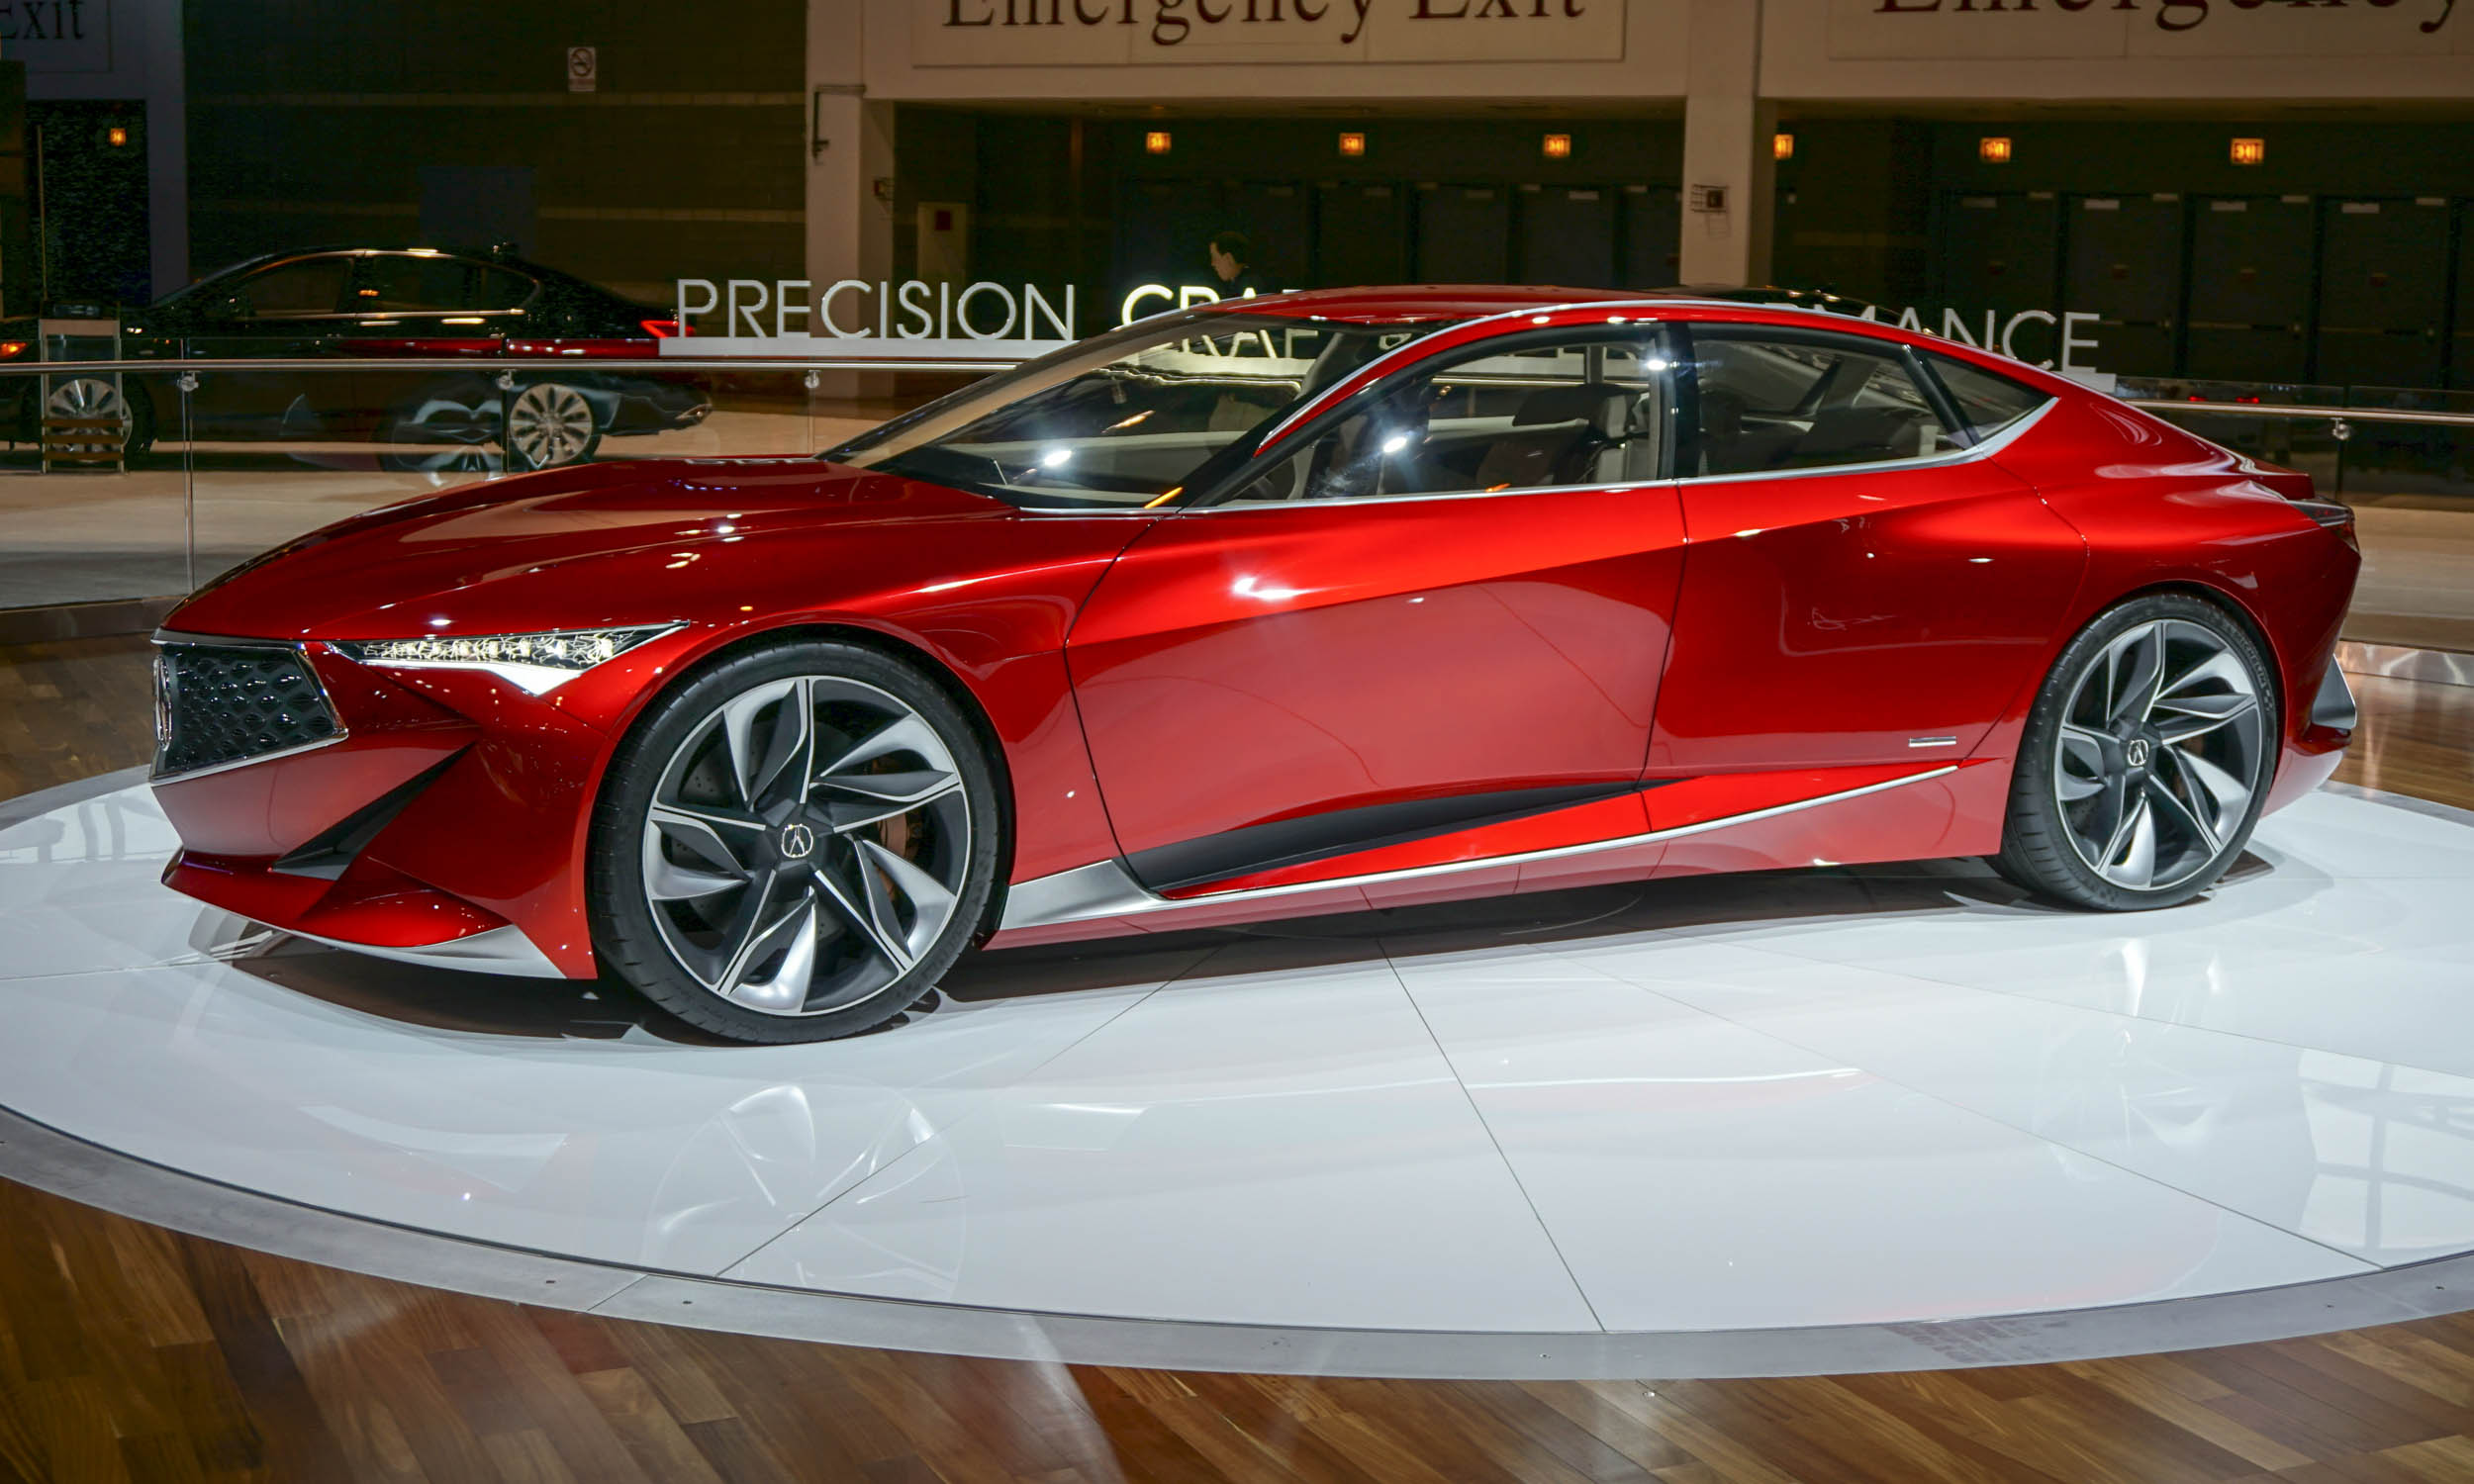 2016 Chicago Auto Show: The Cars